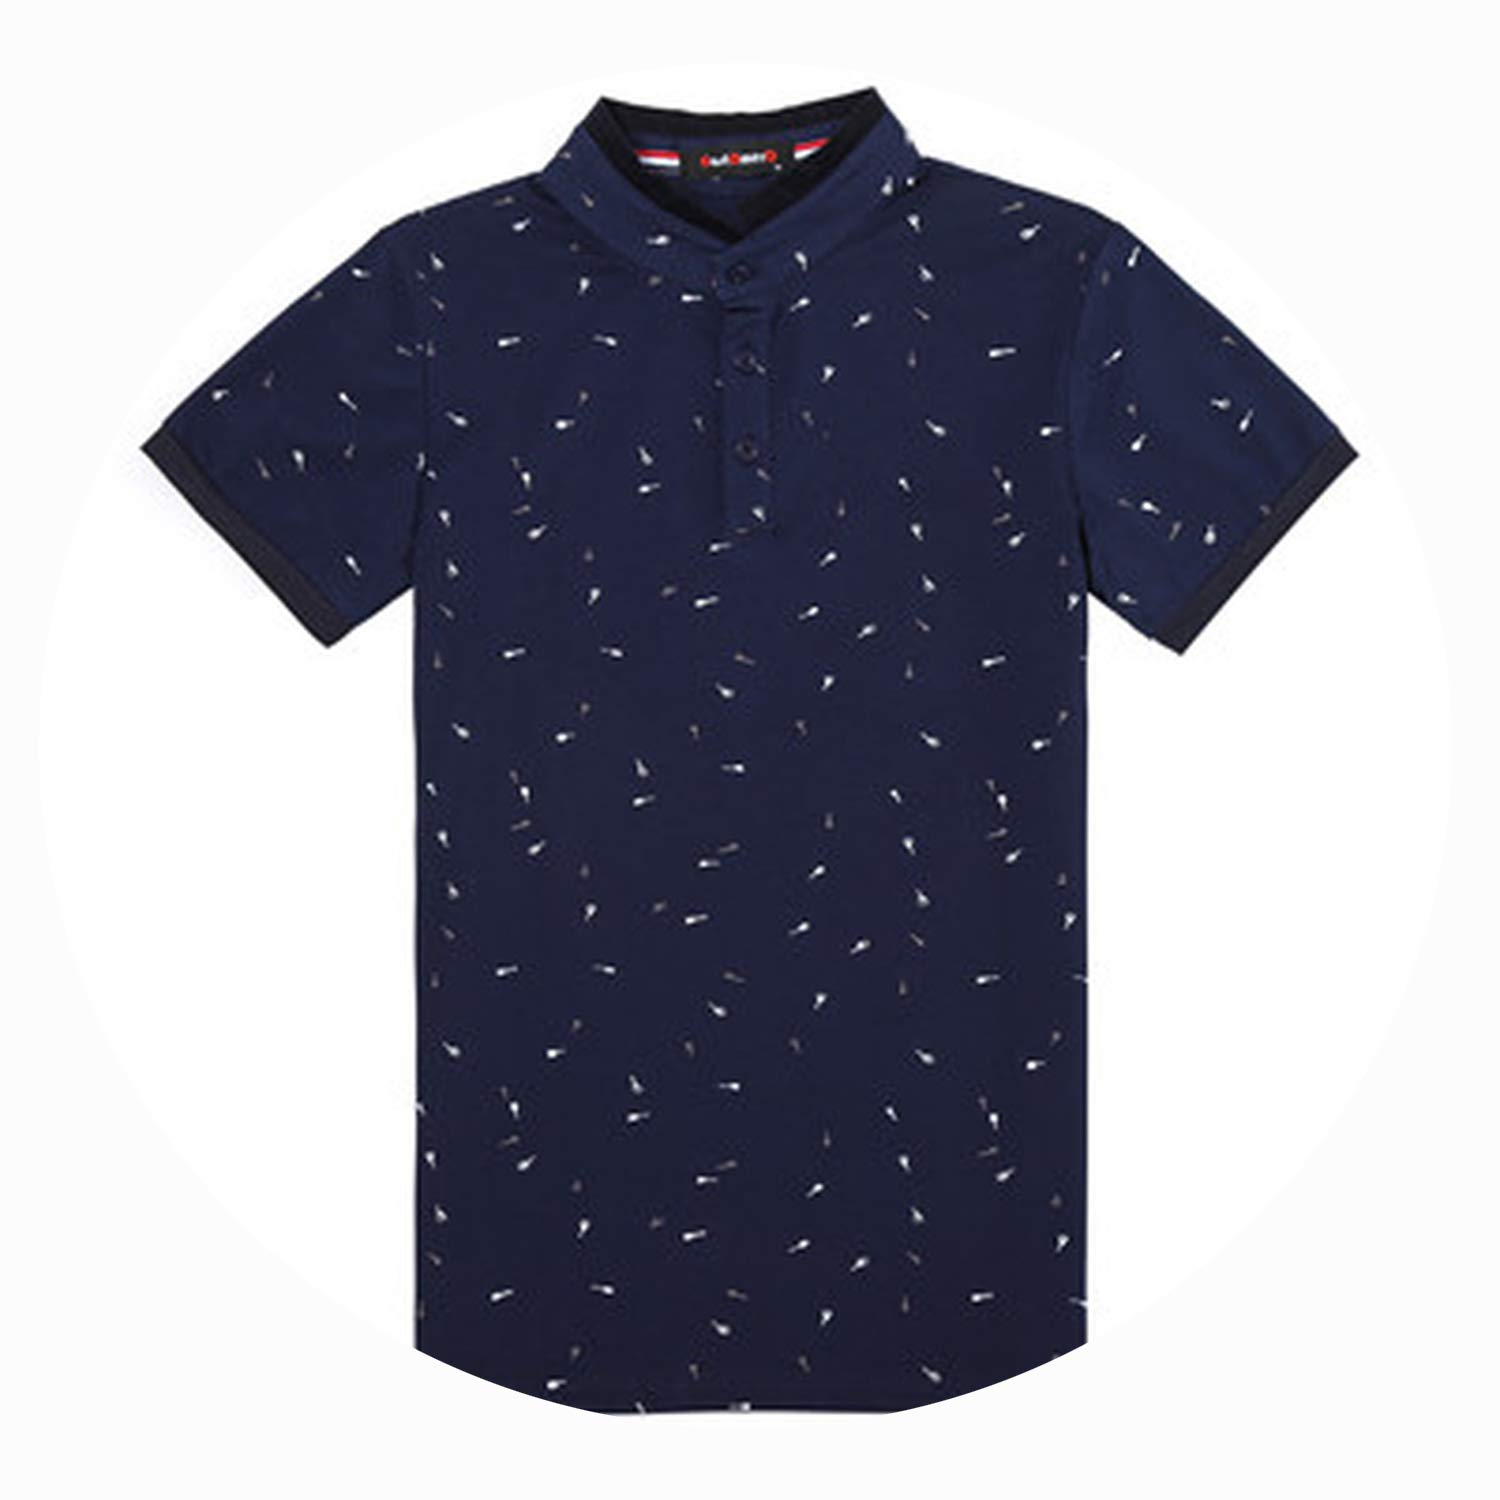 Shocked Tomato-shirt Summer Guitar Printed Stand Collar Men Short Sleeve Slim Fit Polo Homme Cotton,Navy,L